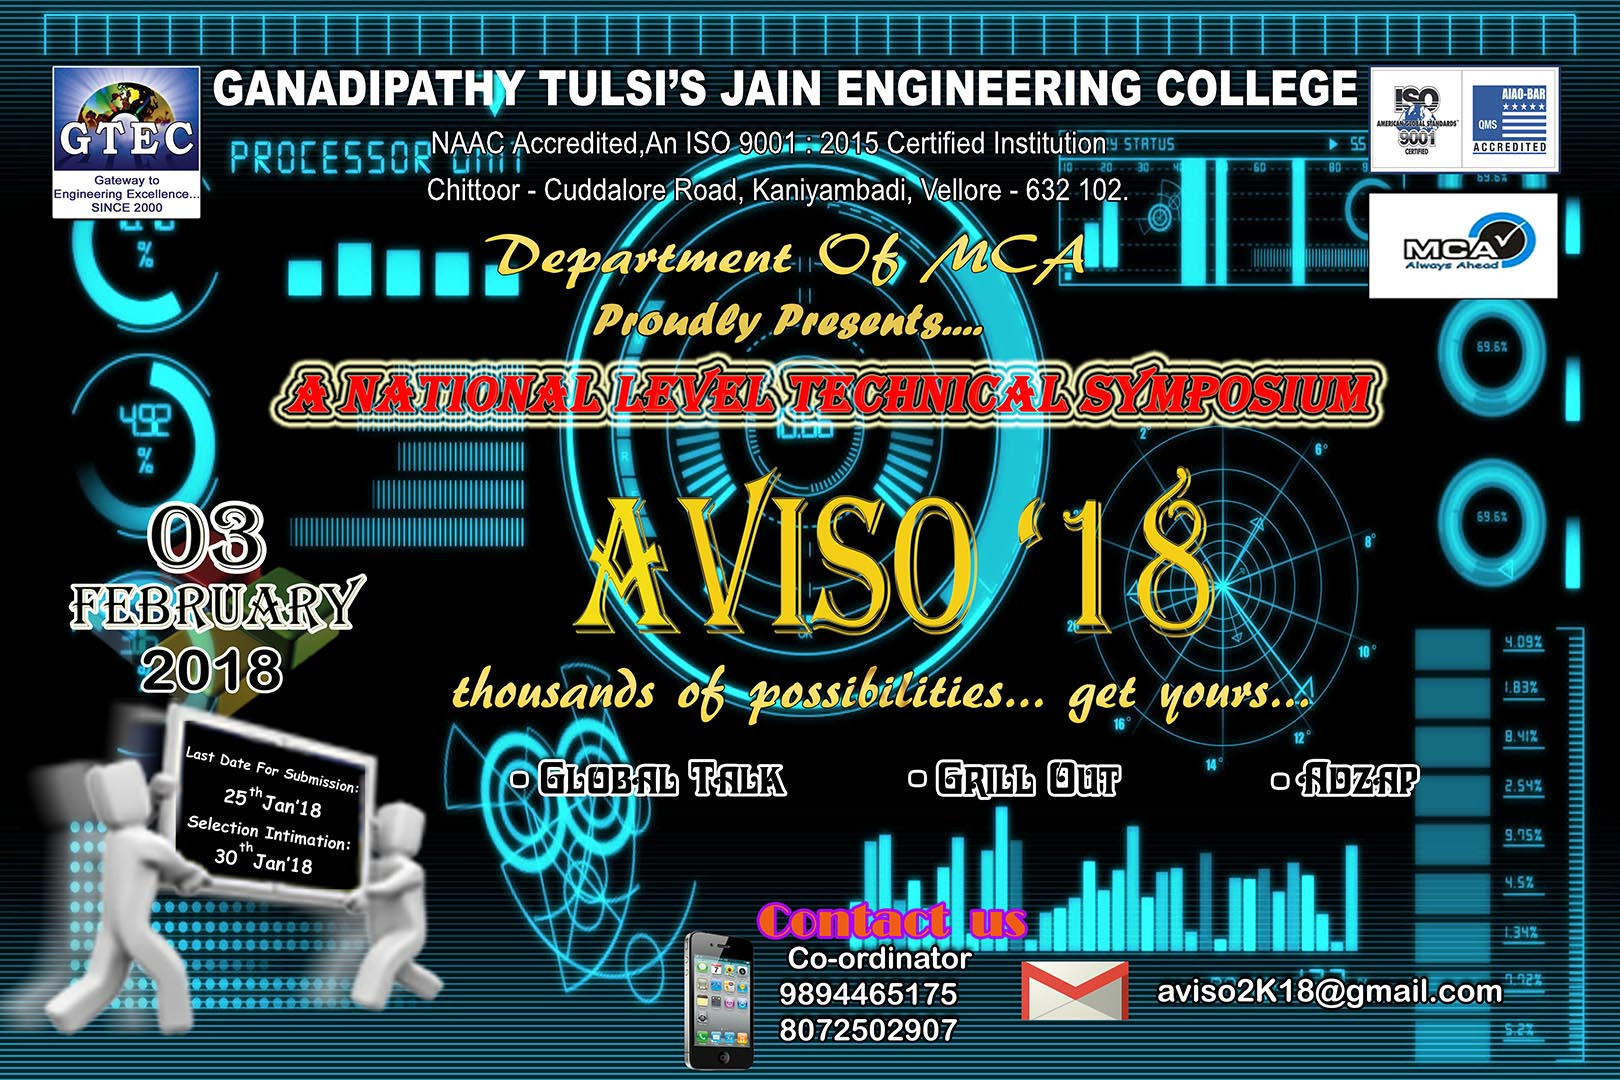 Gtec ganadipathy tulsis jain engineering college organized by department of civil engg aiddatafo Choice Image